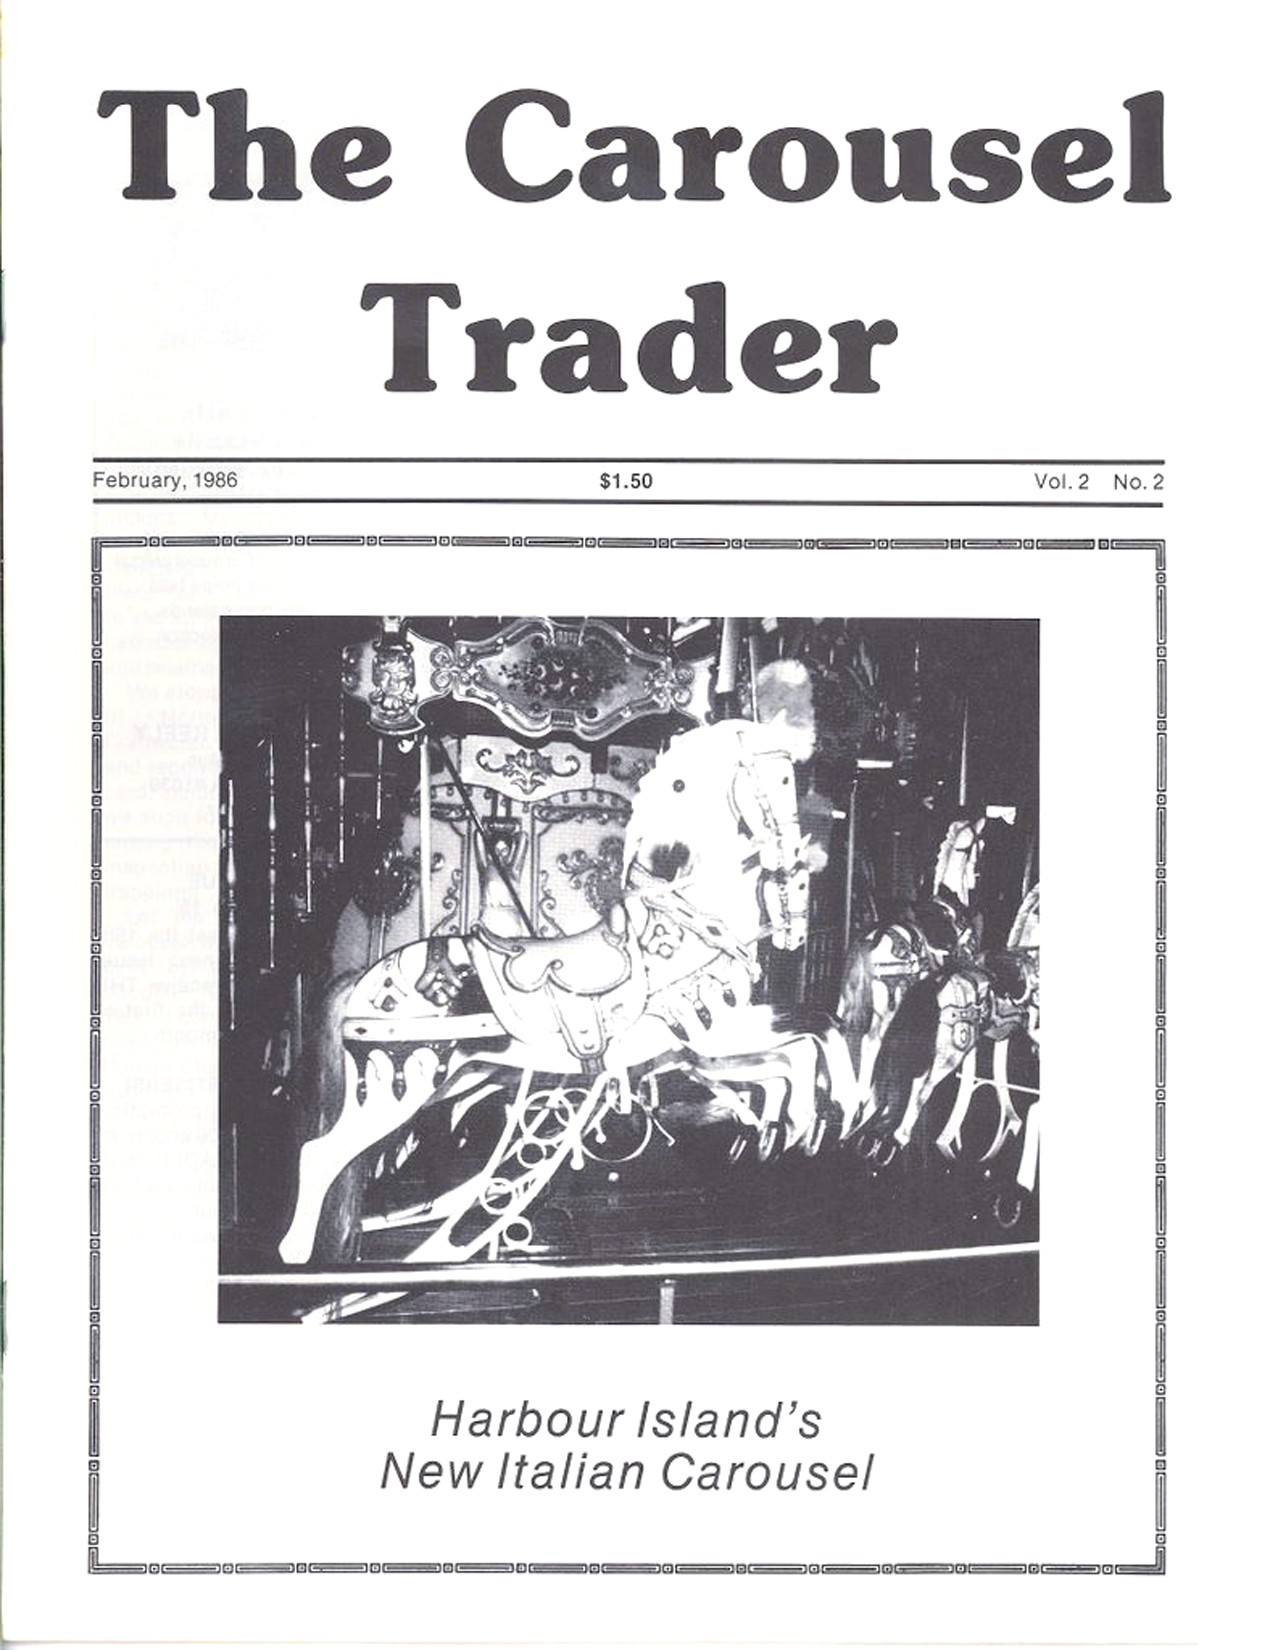 Carousel-News-02_1986-cover-Harbor-Islands-new-carousel